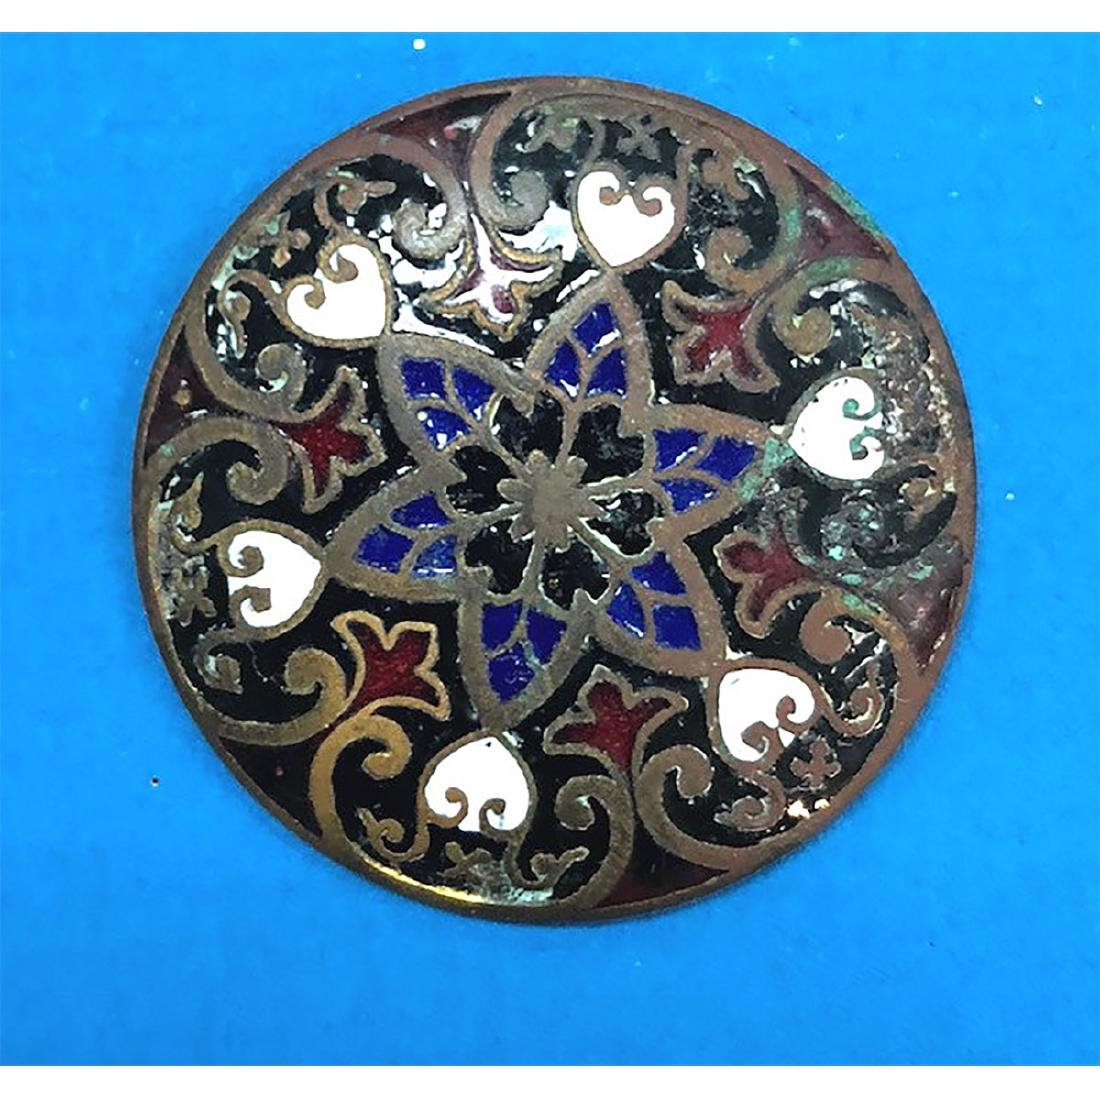 6 CARDS OF HORN/VI/WOOD BUTTONS S/M/L - 10